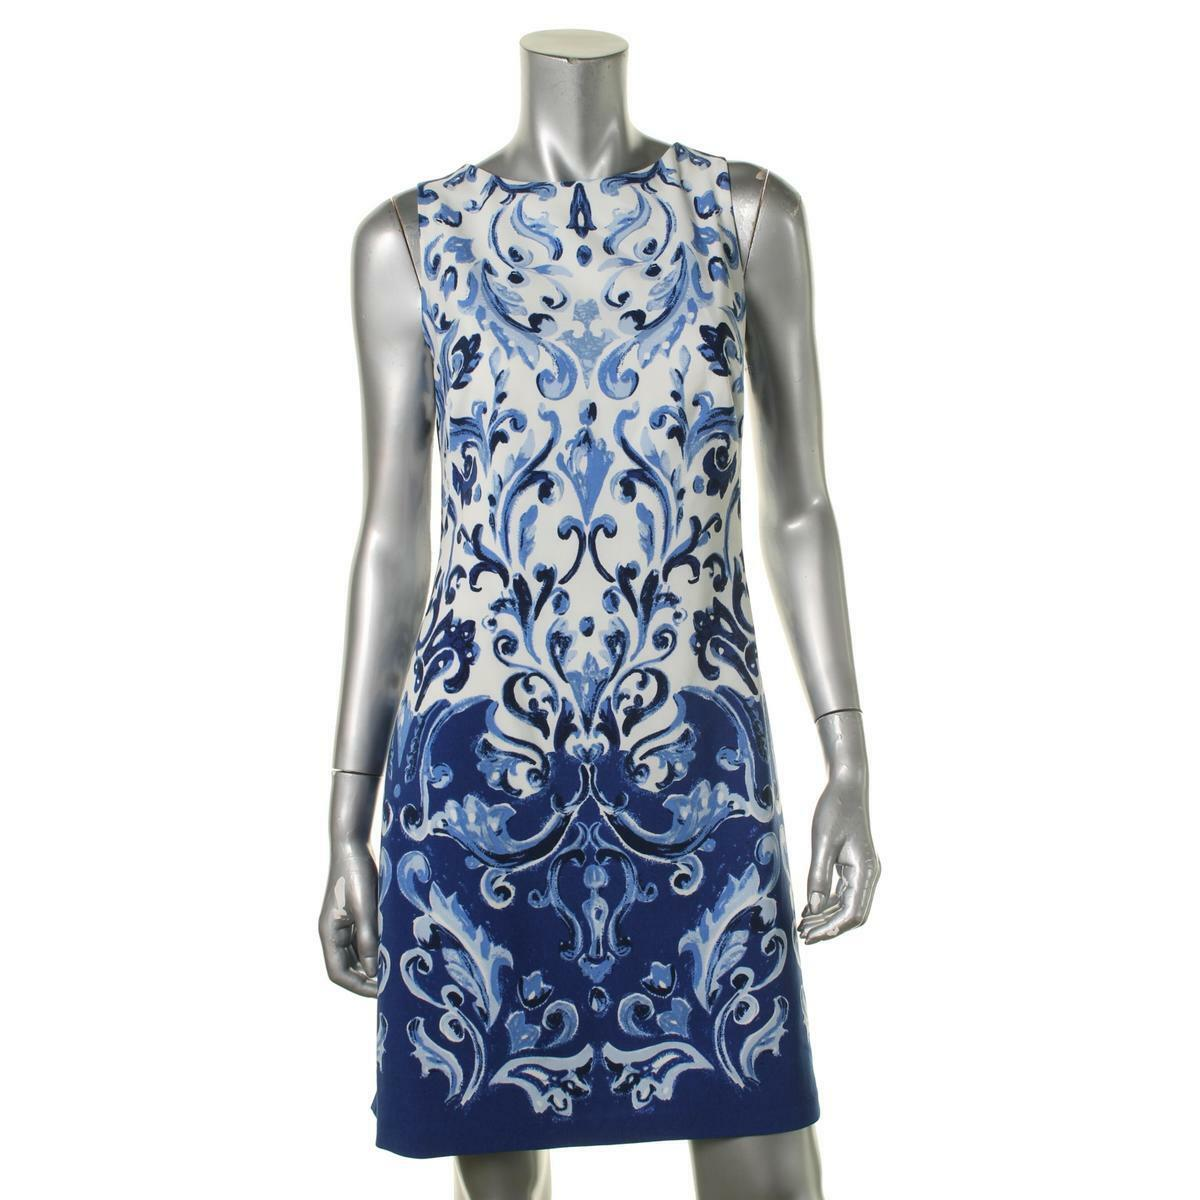 Lauren Ralph Lauren bluee White Printed A-Line Wear to Work Dress Sz 12